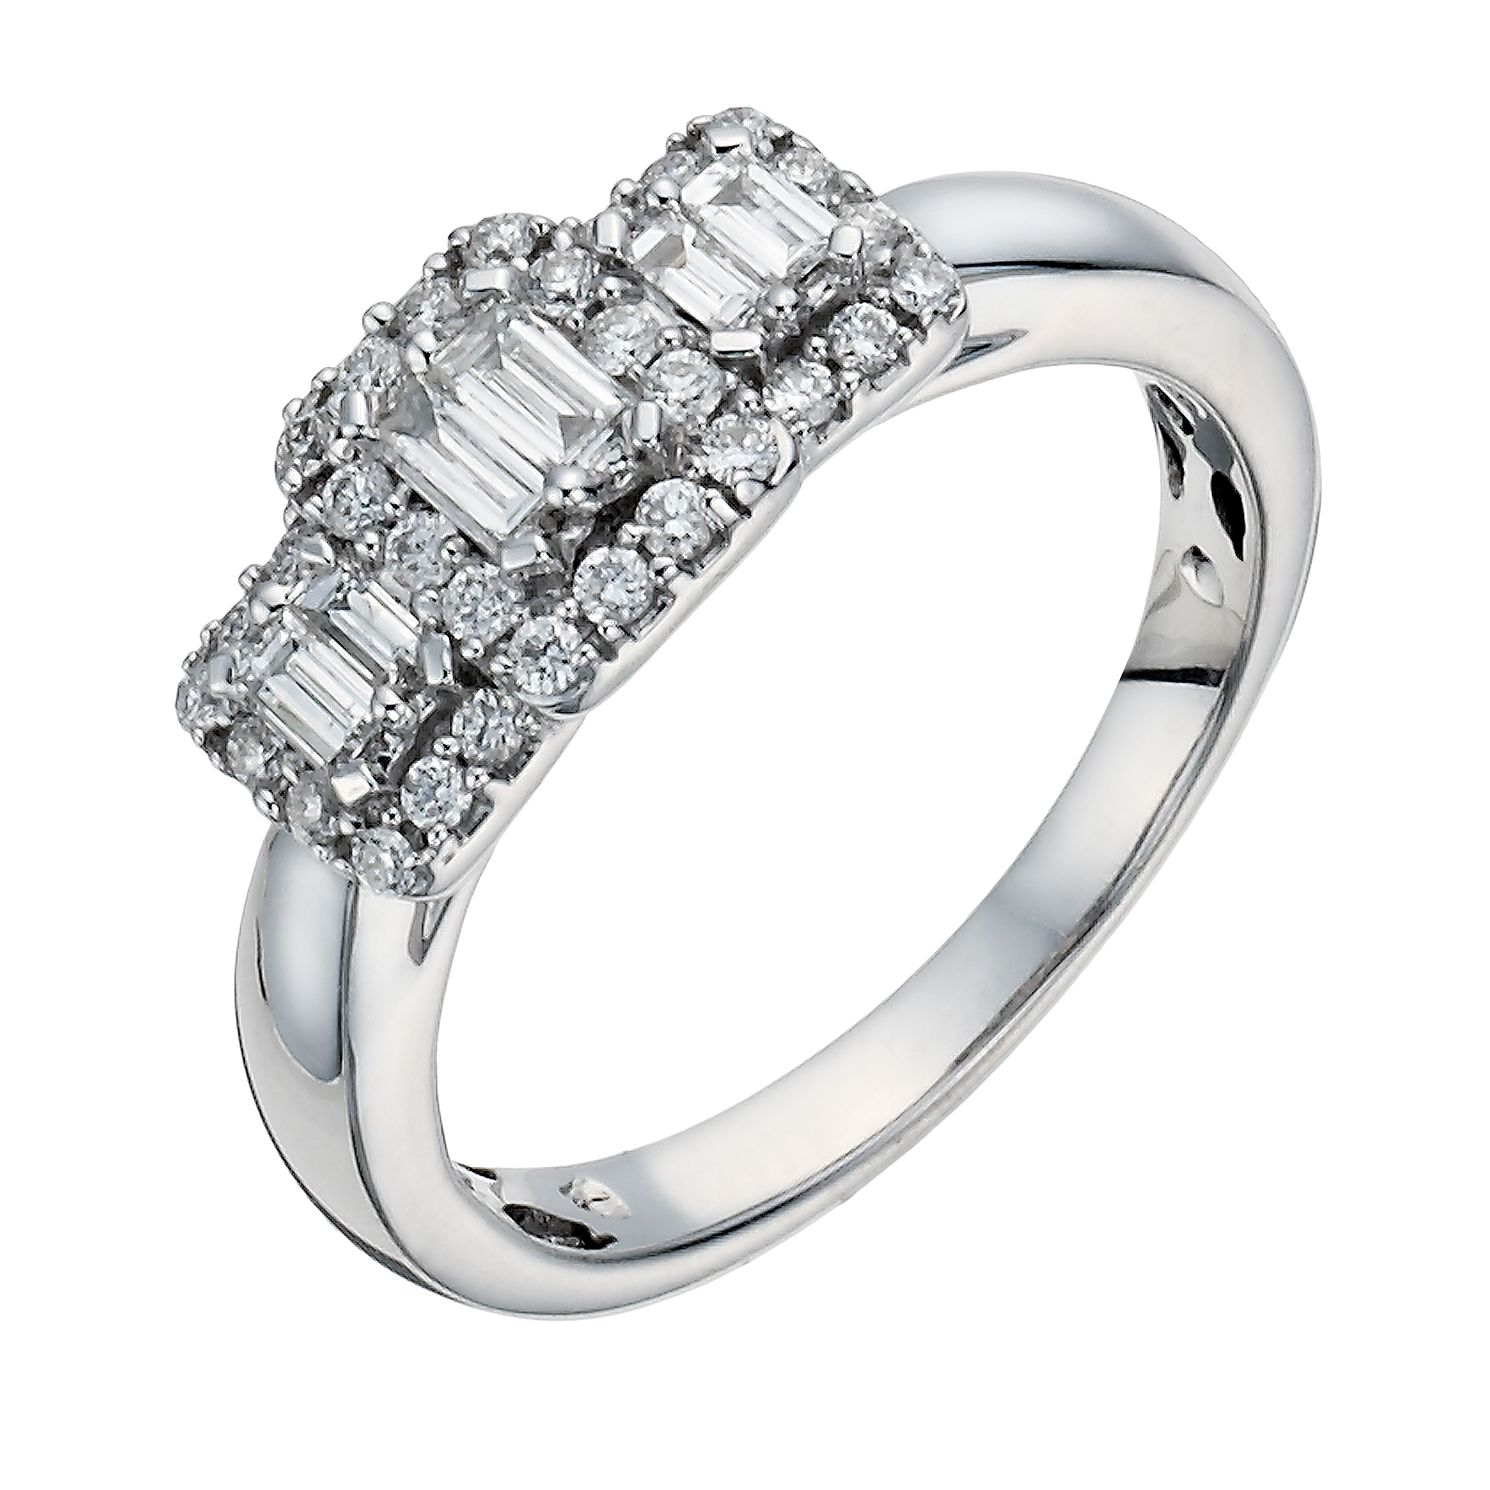 karat carat the products diamond with white rings engagement semi ring baguette carats fixed eternity band gold